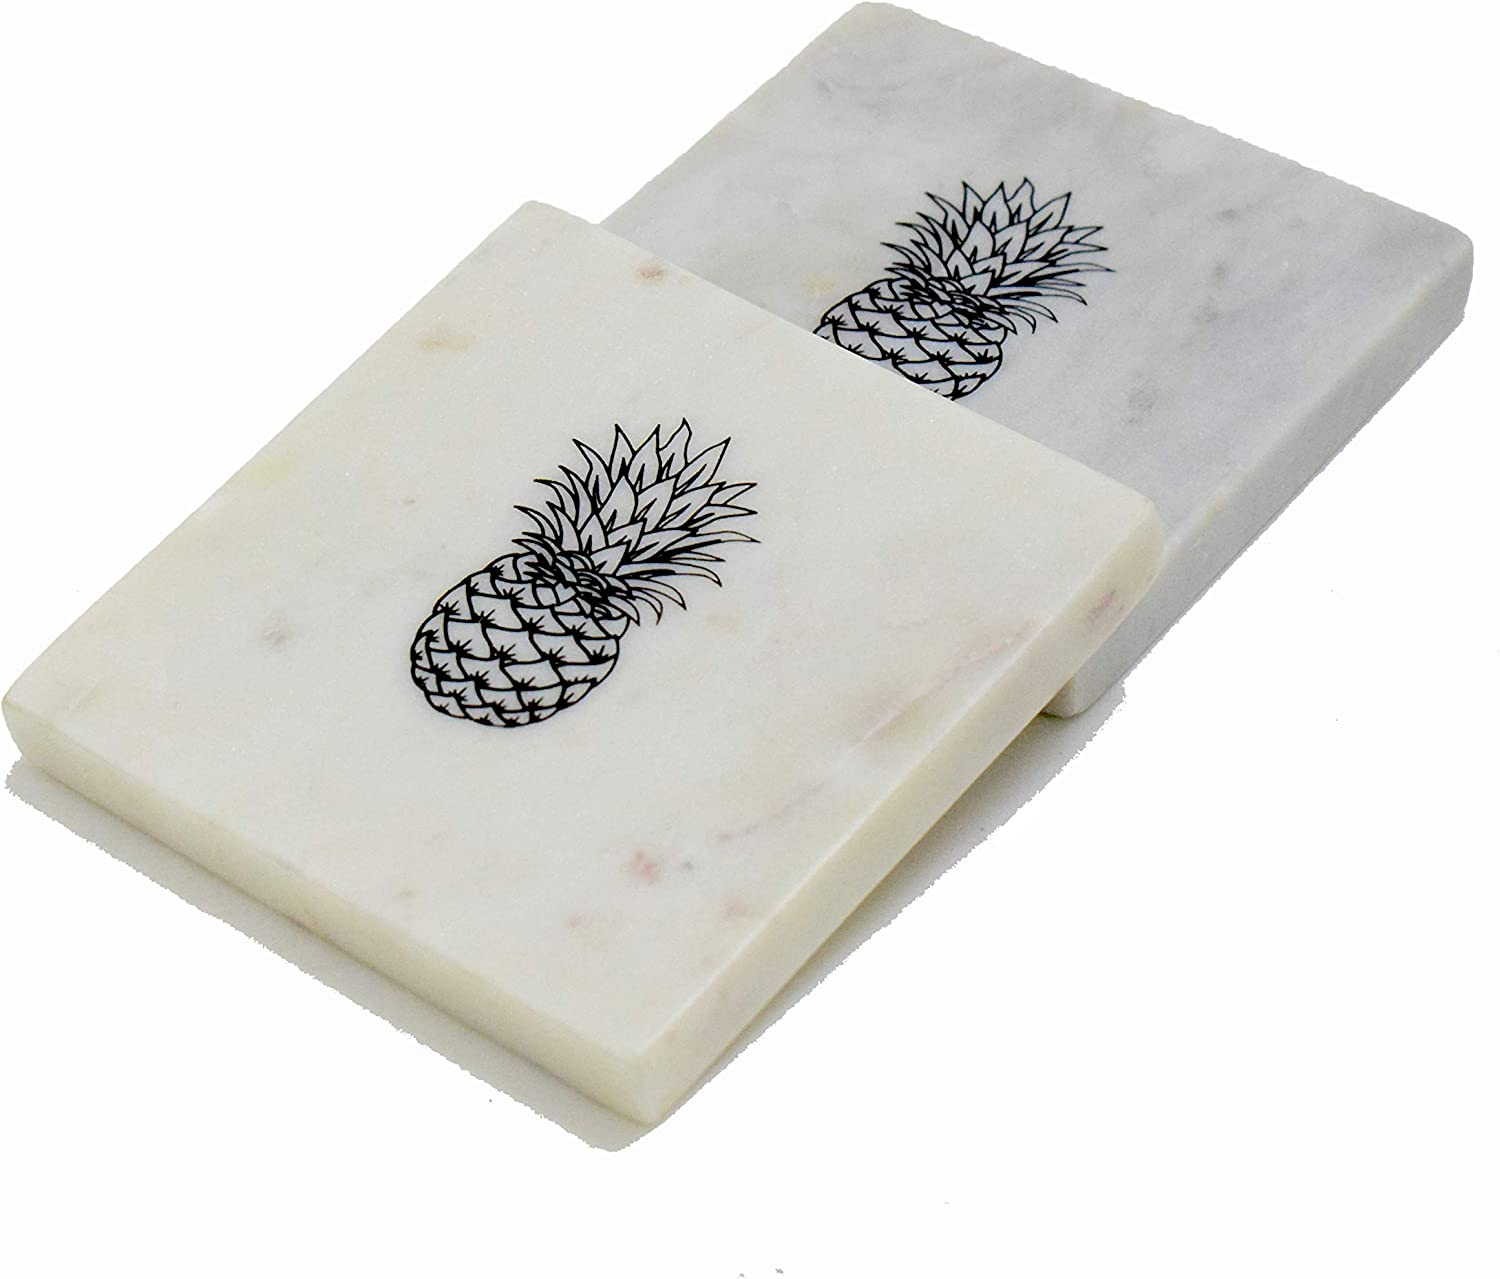 Hashcar Decorative Marble Coasters for Drinks (Set of 2) - Coaster Set for Dining Table | Centre Table- Kitchen Décor